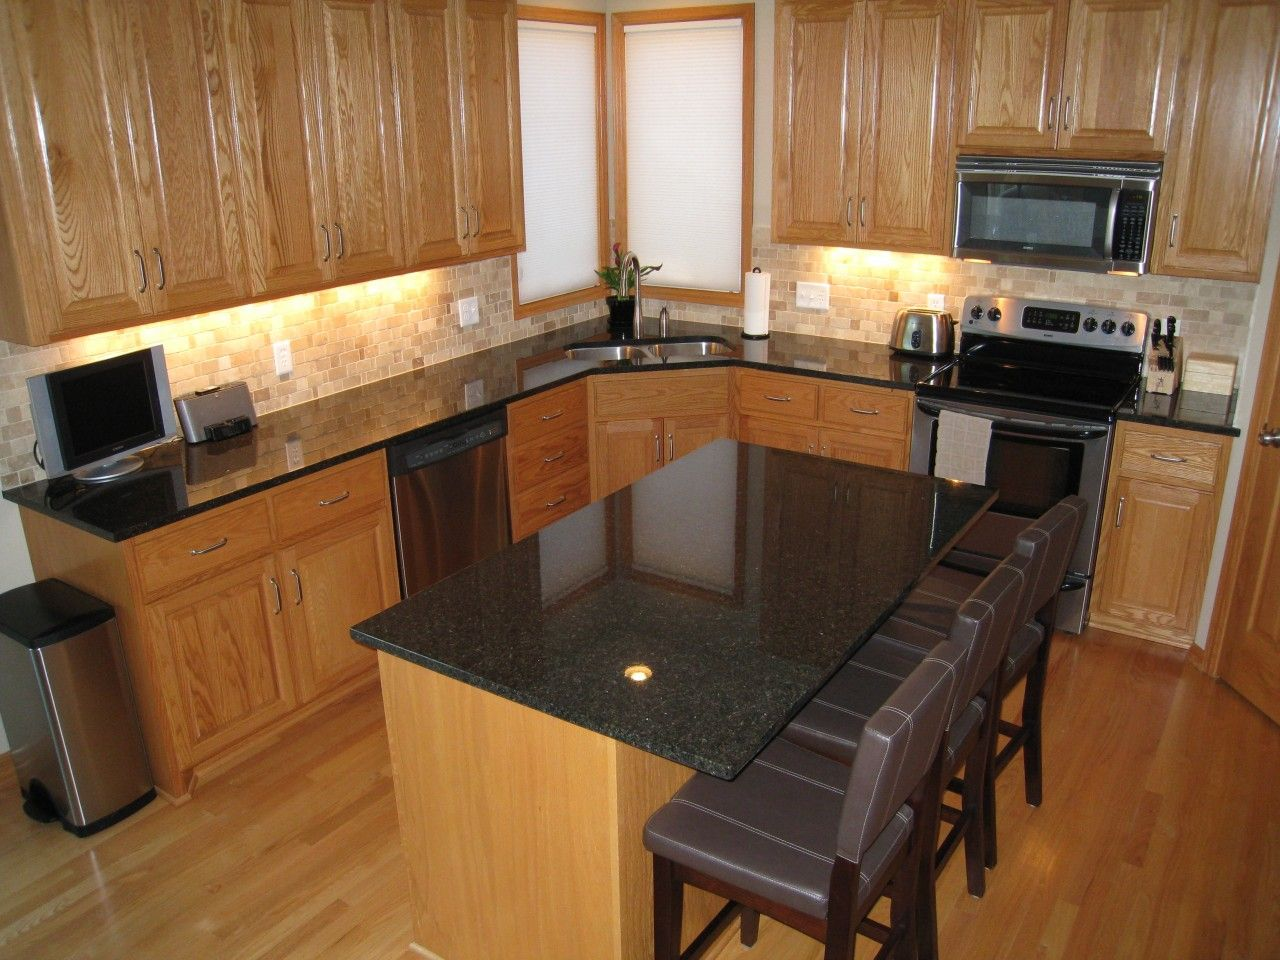 Dark grey countertops with oak cabinets google search for Kitchen cabinets and countertops ideas